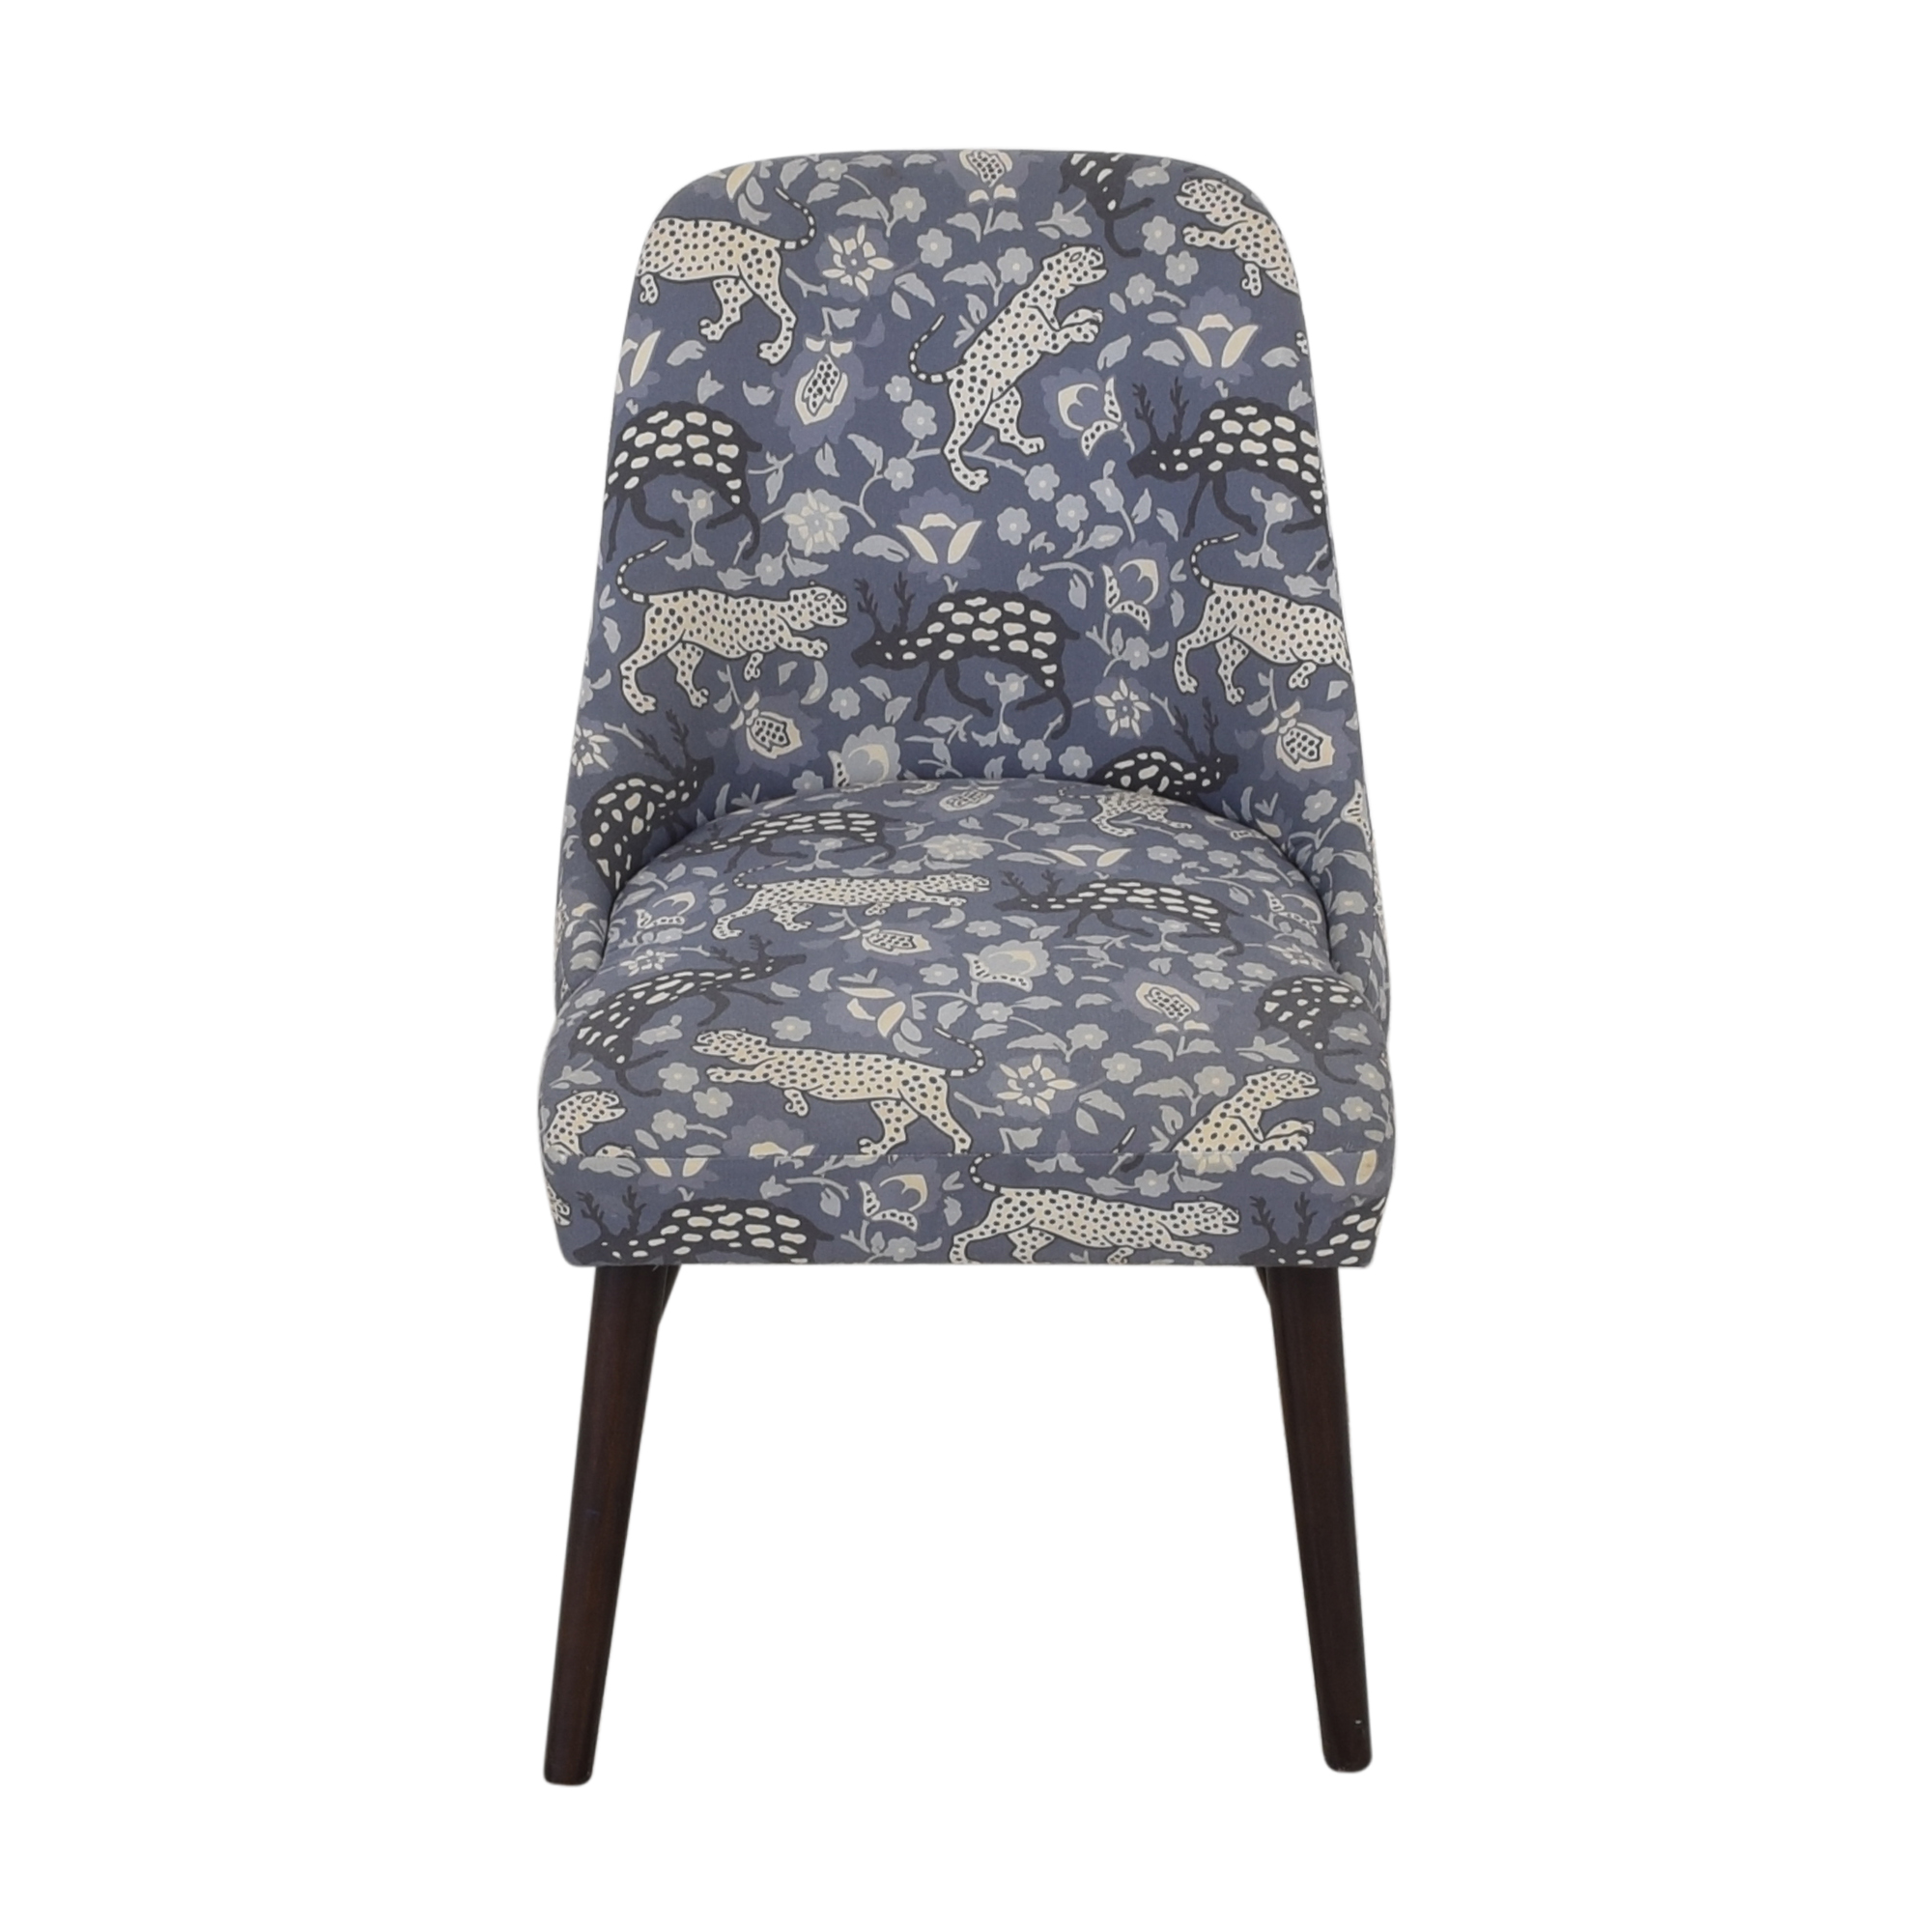 Skyline Patterned Upholstered Dining Chair sale